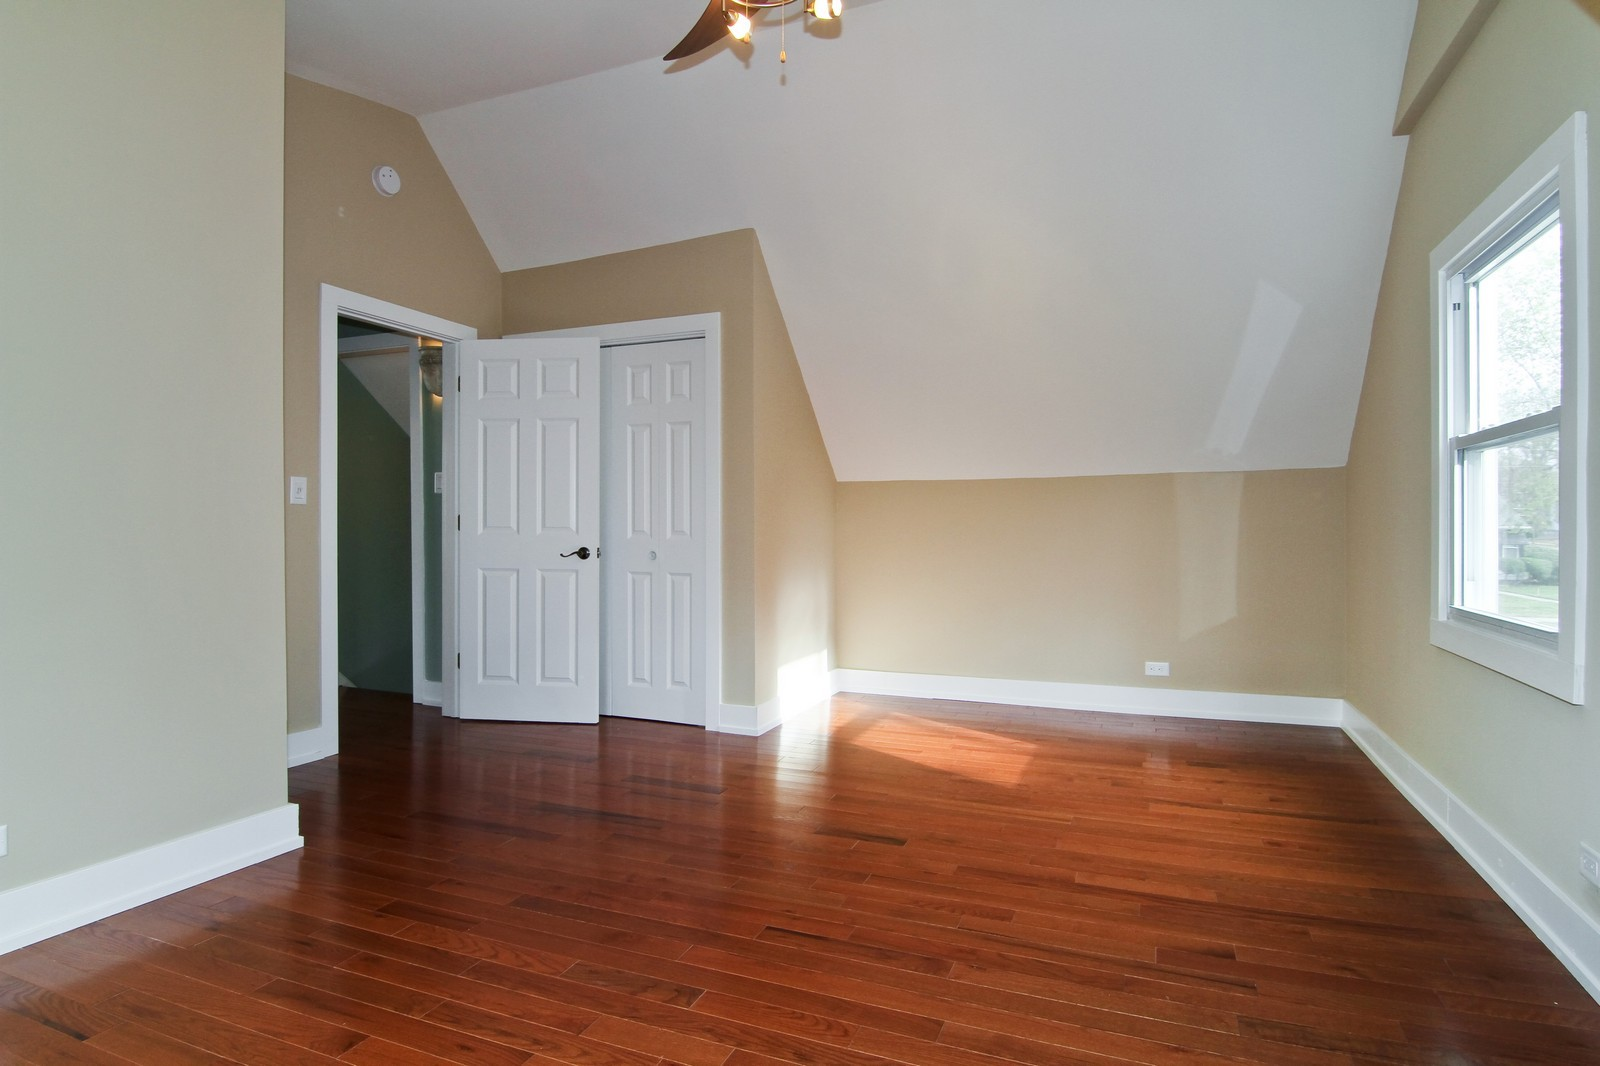 Real Estate Photography - 406 N Garfield St, Lombard, IL, 60148 - Master Bedroom